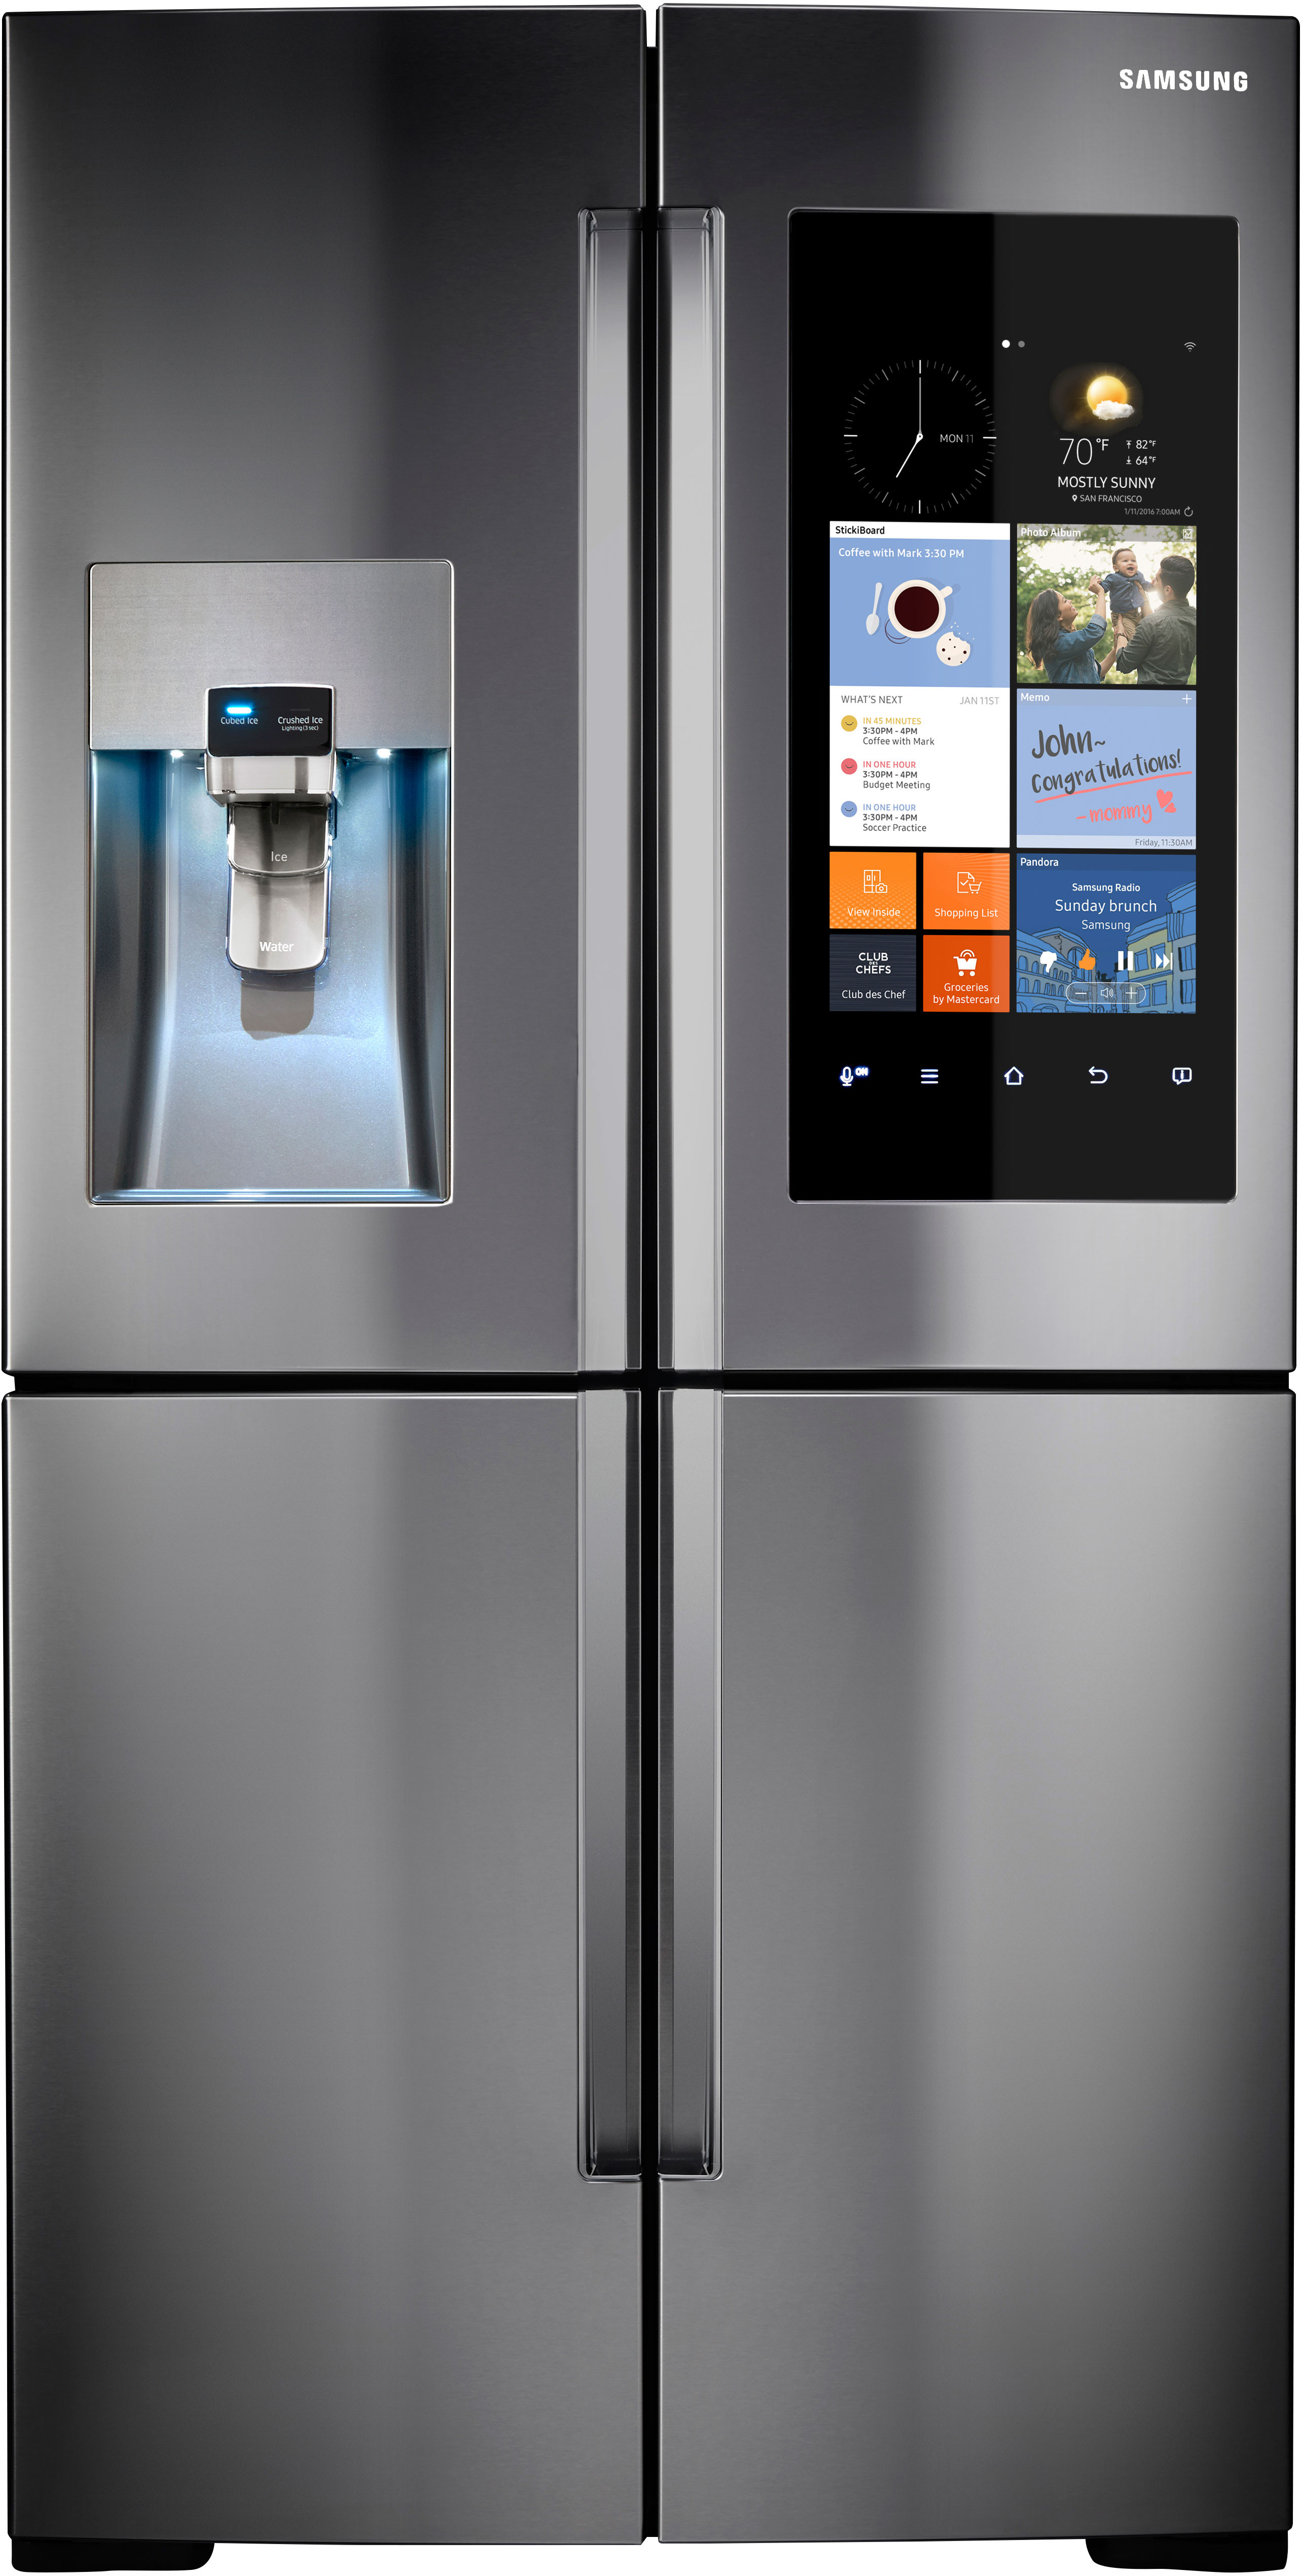 Samsung RF28K9580SR 36 Inch 4 Door Refrigerator With Family Hub WiFi LCD Touchscreen Built In